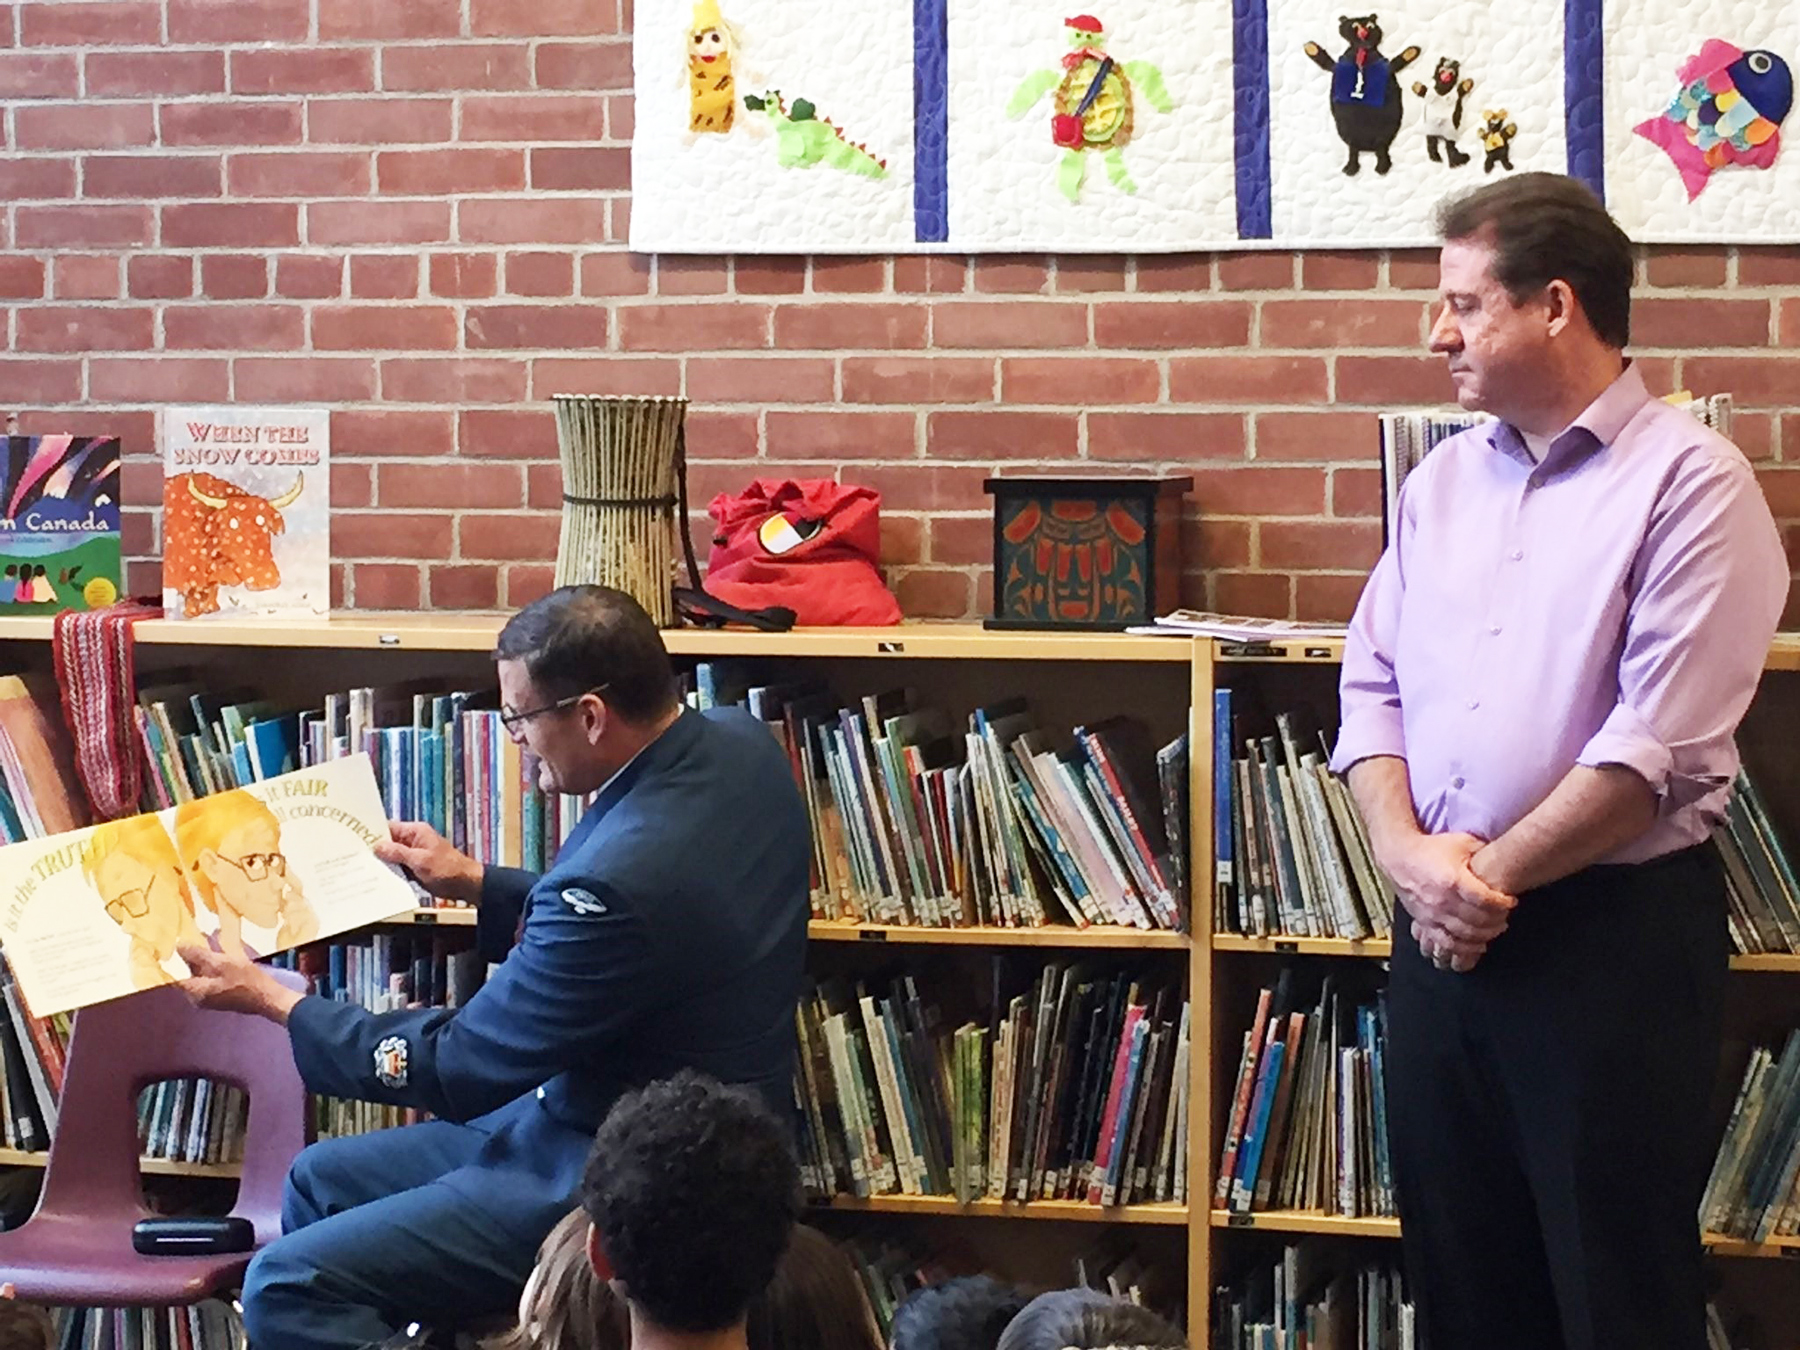 On November 15, 2017, Master Warrant Officer Jason Houle of 16 Wing Borden reads Andy & Elmer's Apple Dumpling Adventure to Grade Two students (and Rotarian Ian Pavlik) at Oakley Park Public School in Barrie, Ontario. PHOTO: Heidi Cameron-Armstrong, Oakley Park Principal.